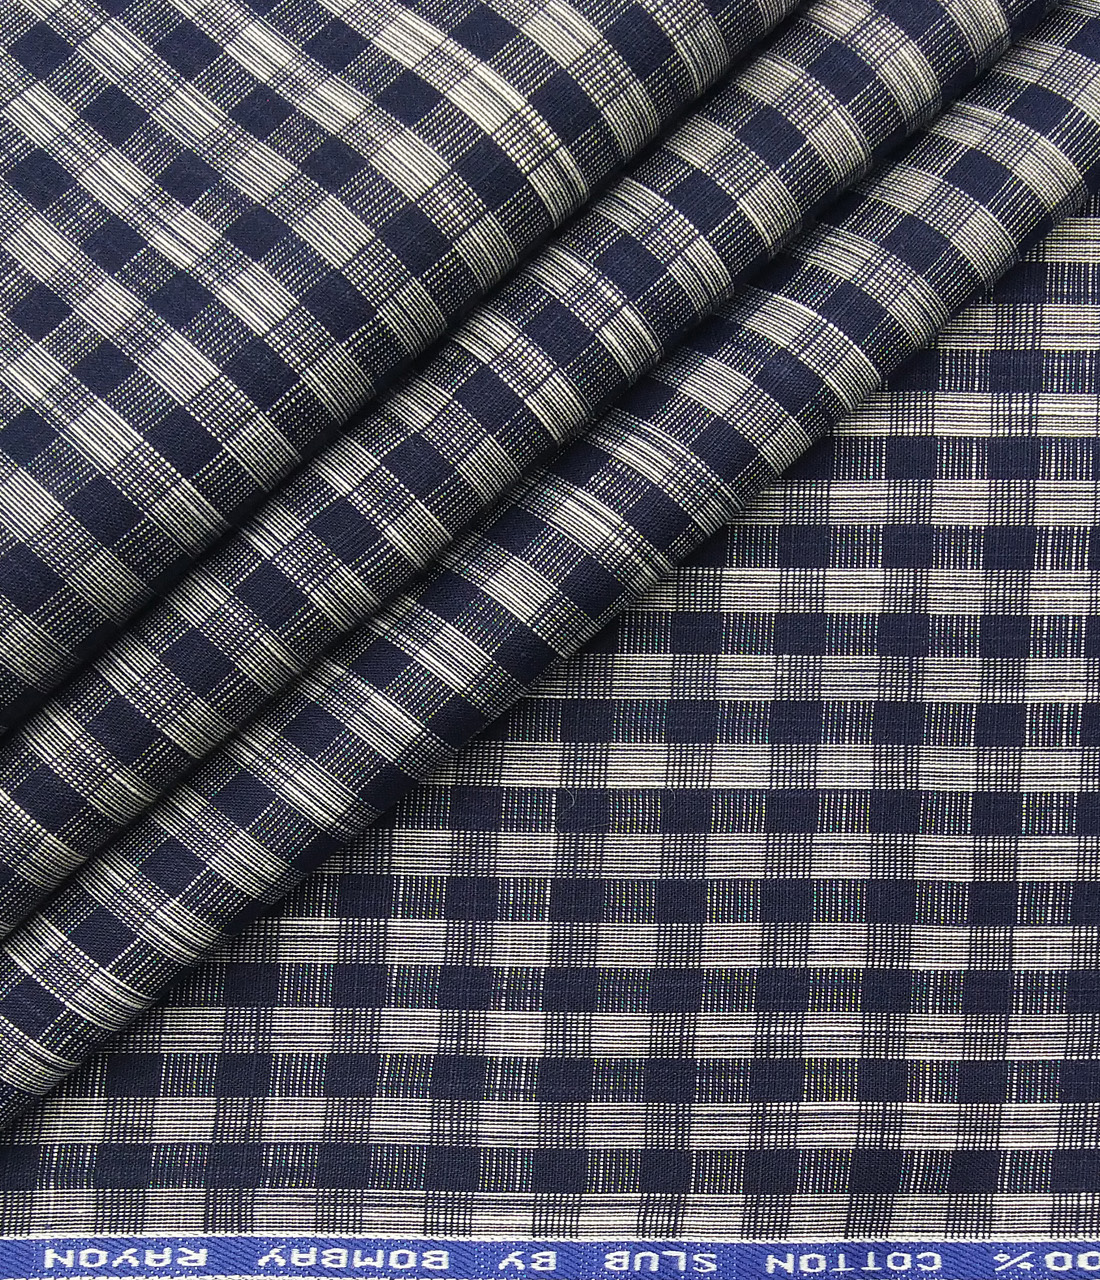 Bombay Rayon Men's Cotton Blue Checks 1.60 Meter Unstitched Shirt Fabric (Grey)